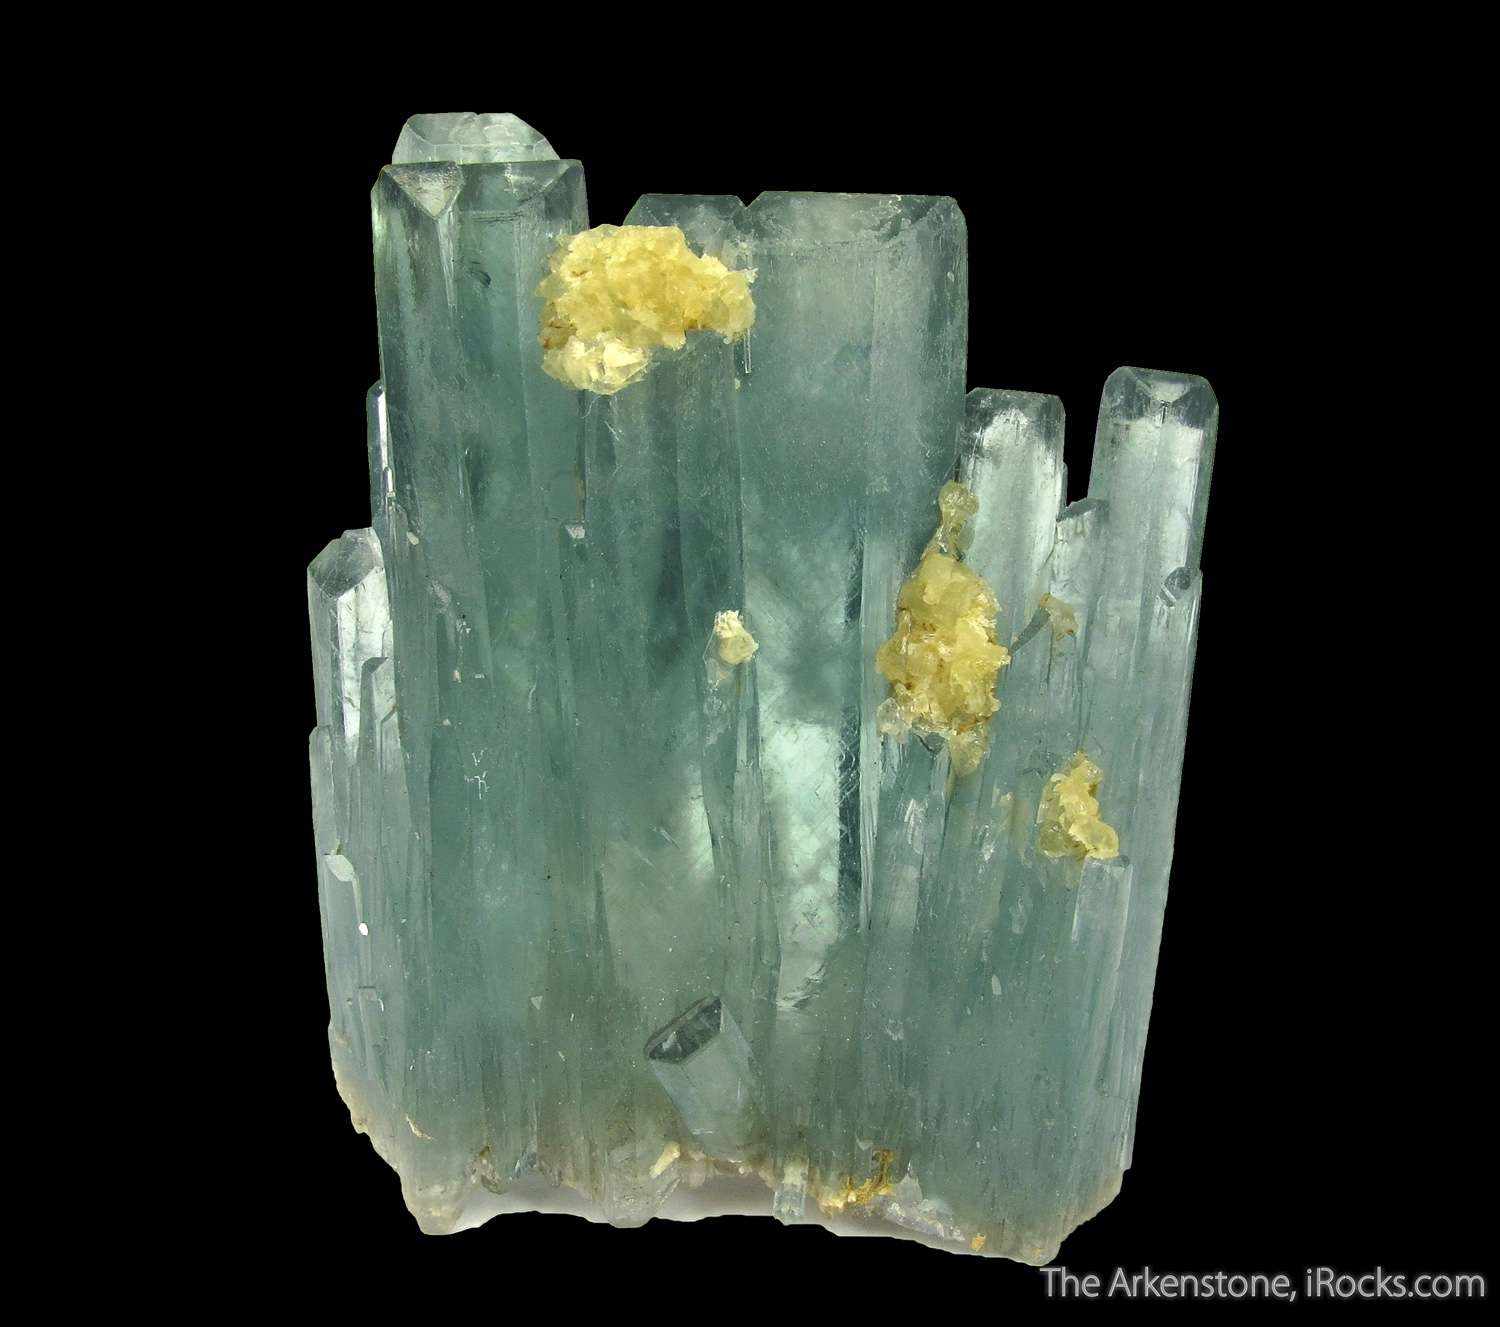 This locality produced classic easily recognizable Baryte specimens